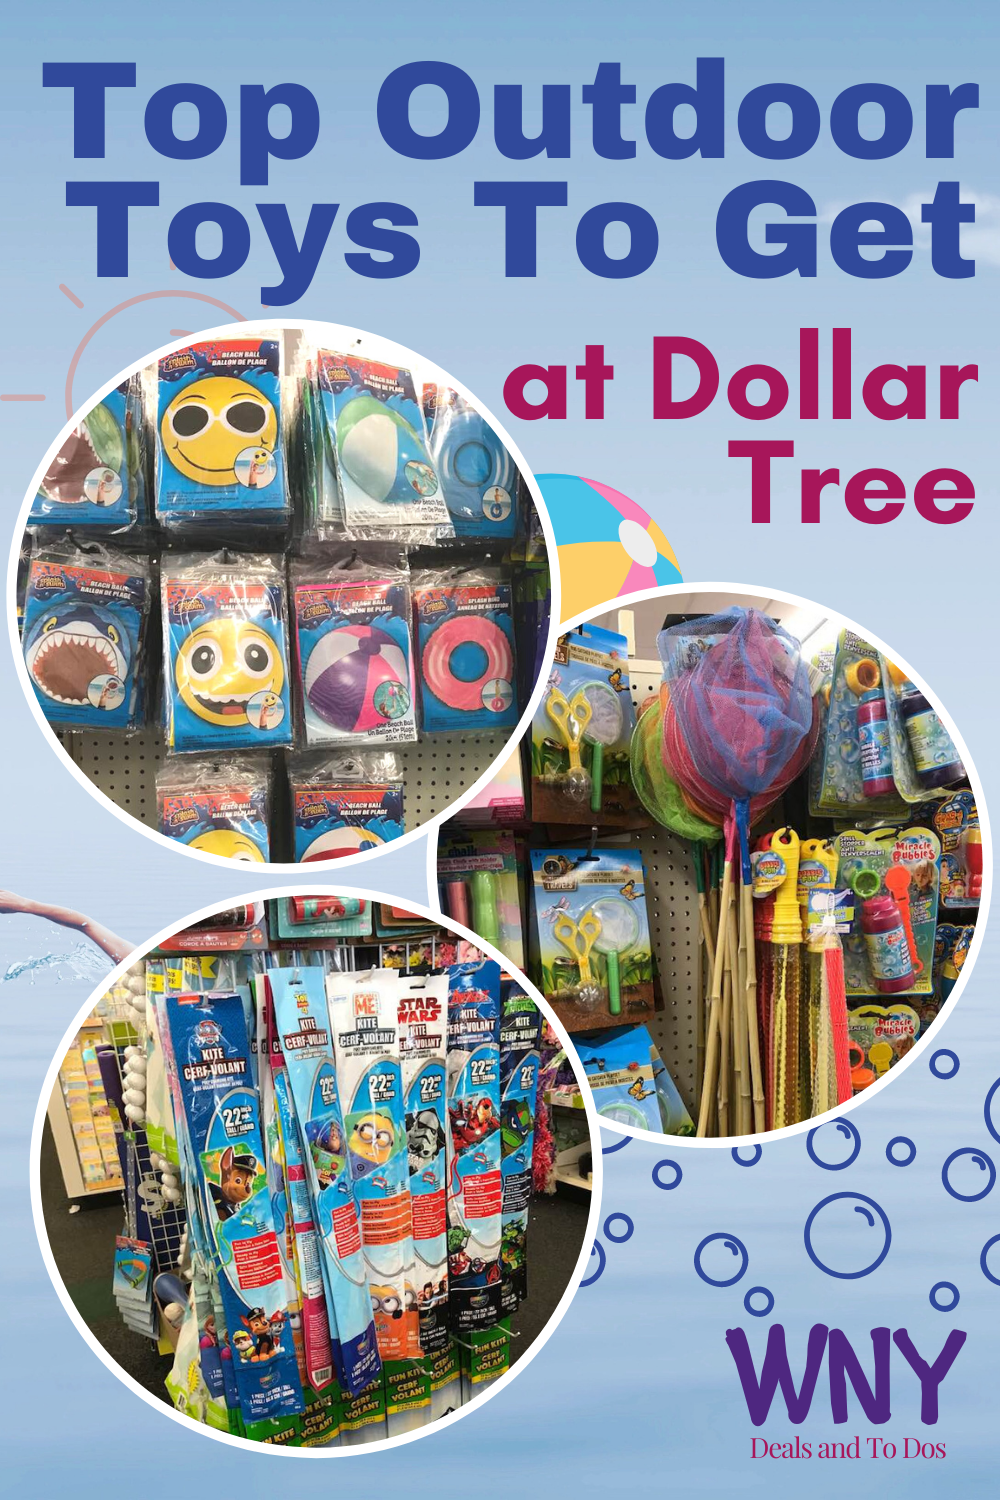 With nicer weather upon us, your children will hopefully be spending more time outdoors!  Here are some of my top outdoor toys to pick up next time you are at Dollar Tree!